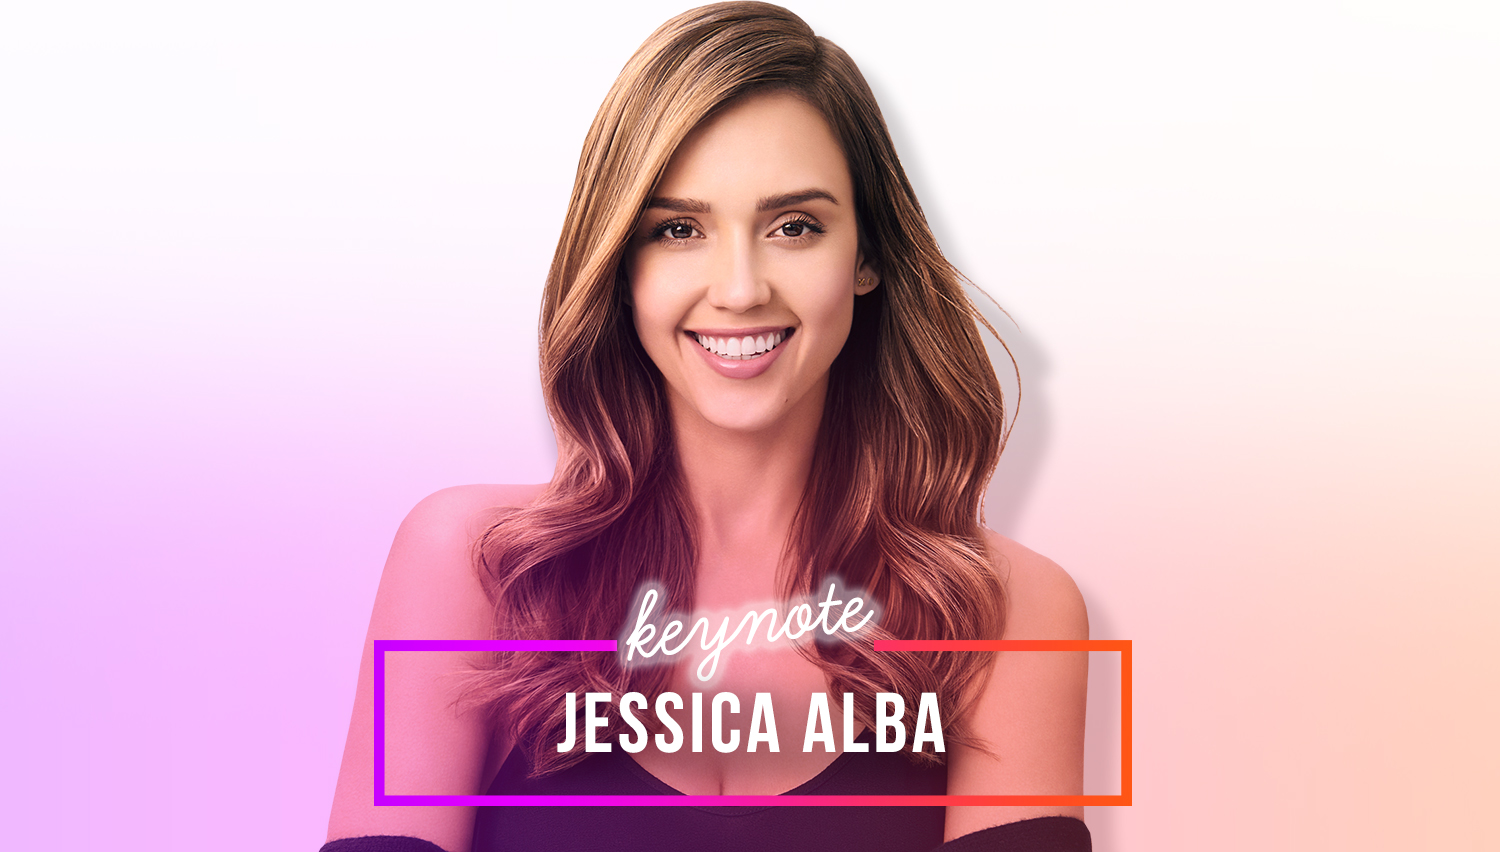 Welcome Jessica Alba and the Honest Company! - Jessica Alba will close #BlogHer18 Creators Summit in a keynote discussion this August 9th.